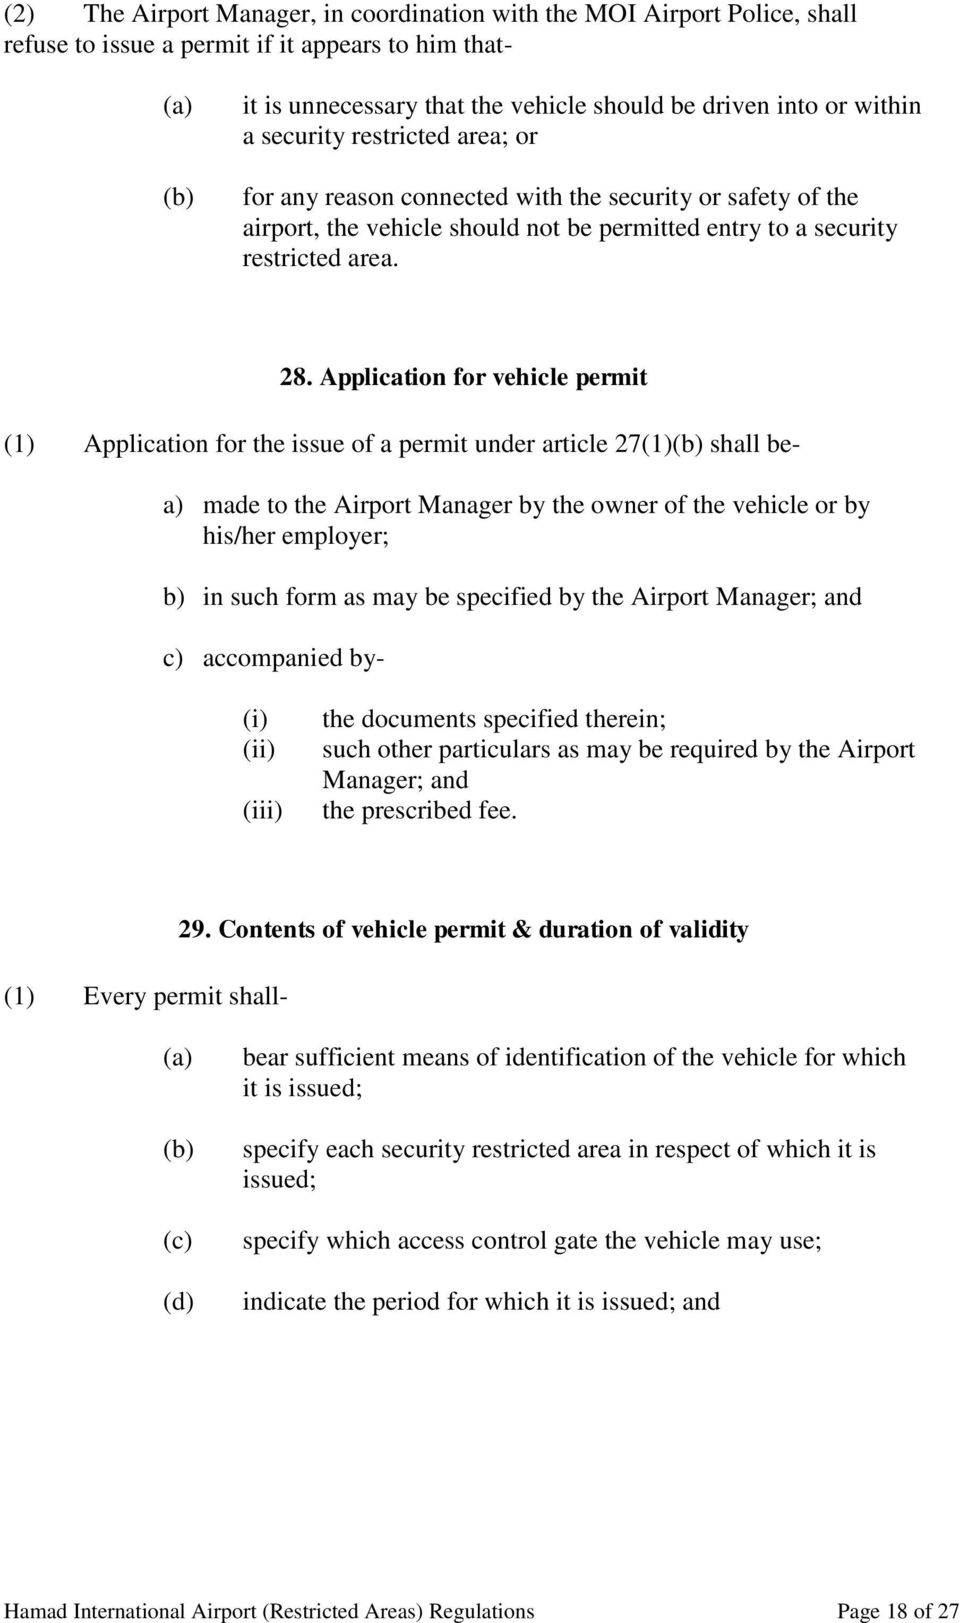 Application for vehicle permit (1) Application for the issue of a permit under article 27(1) shall be- a) made to the Airport Manager by the owner of the vehicle or by his/her employer; b) in such